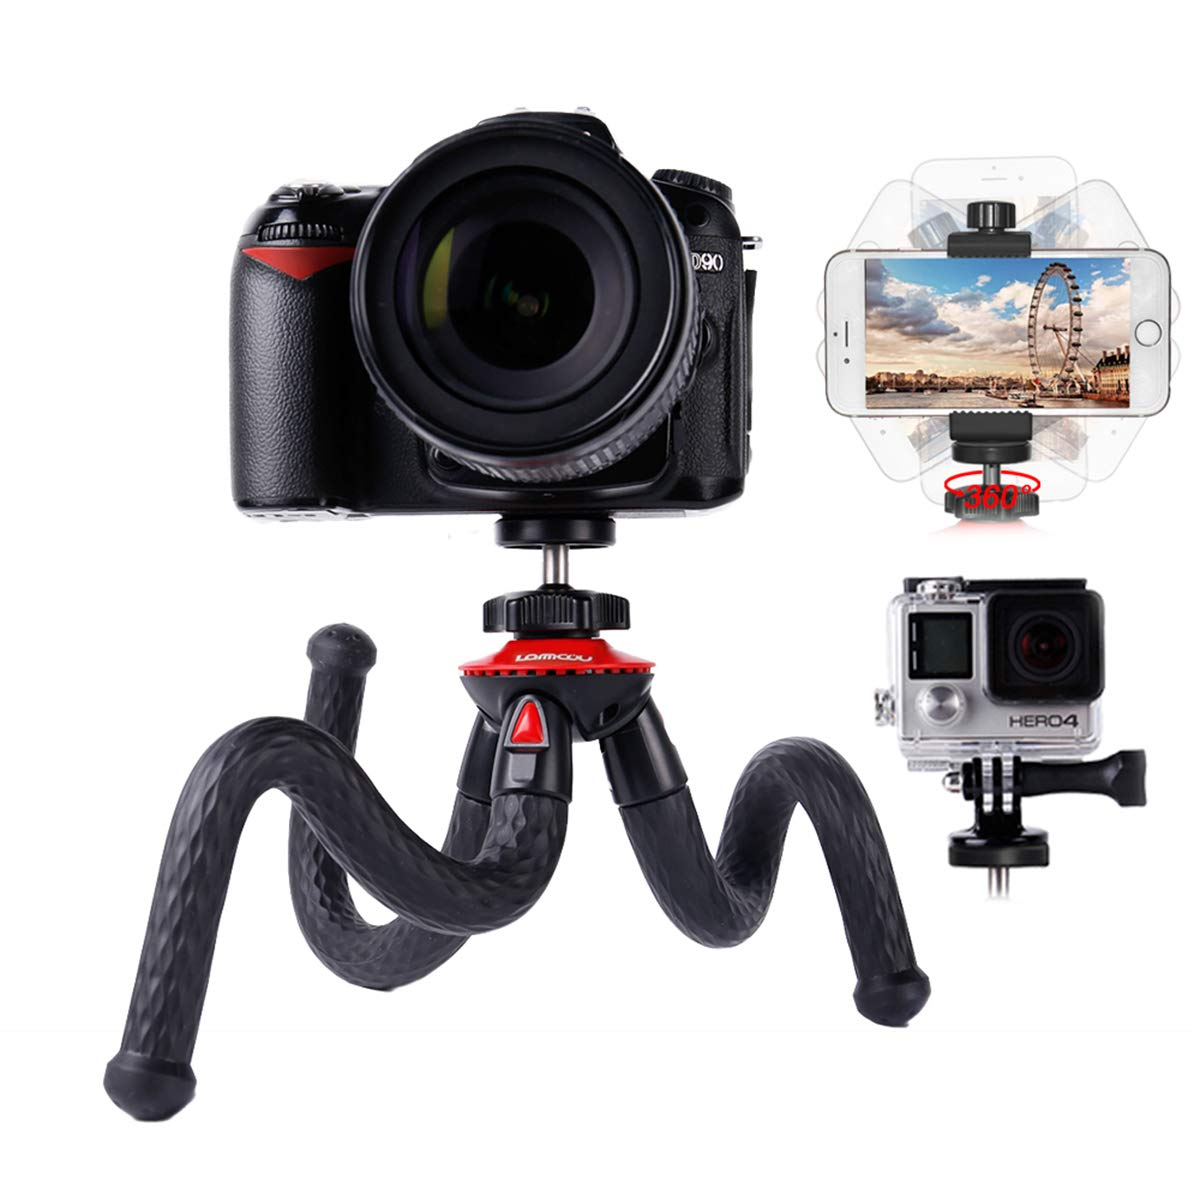 Camera Tripods,Phone Holder Adapter,Travel Tripod for Canon Sony Nikon Panasonic Olympus Fuji Camera with Carry Case